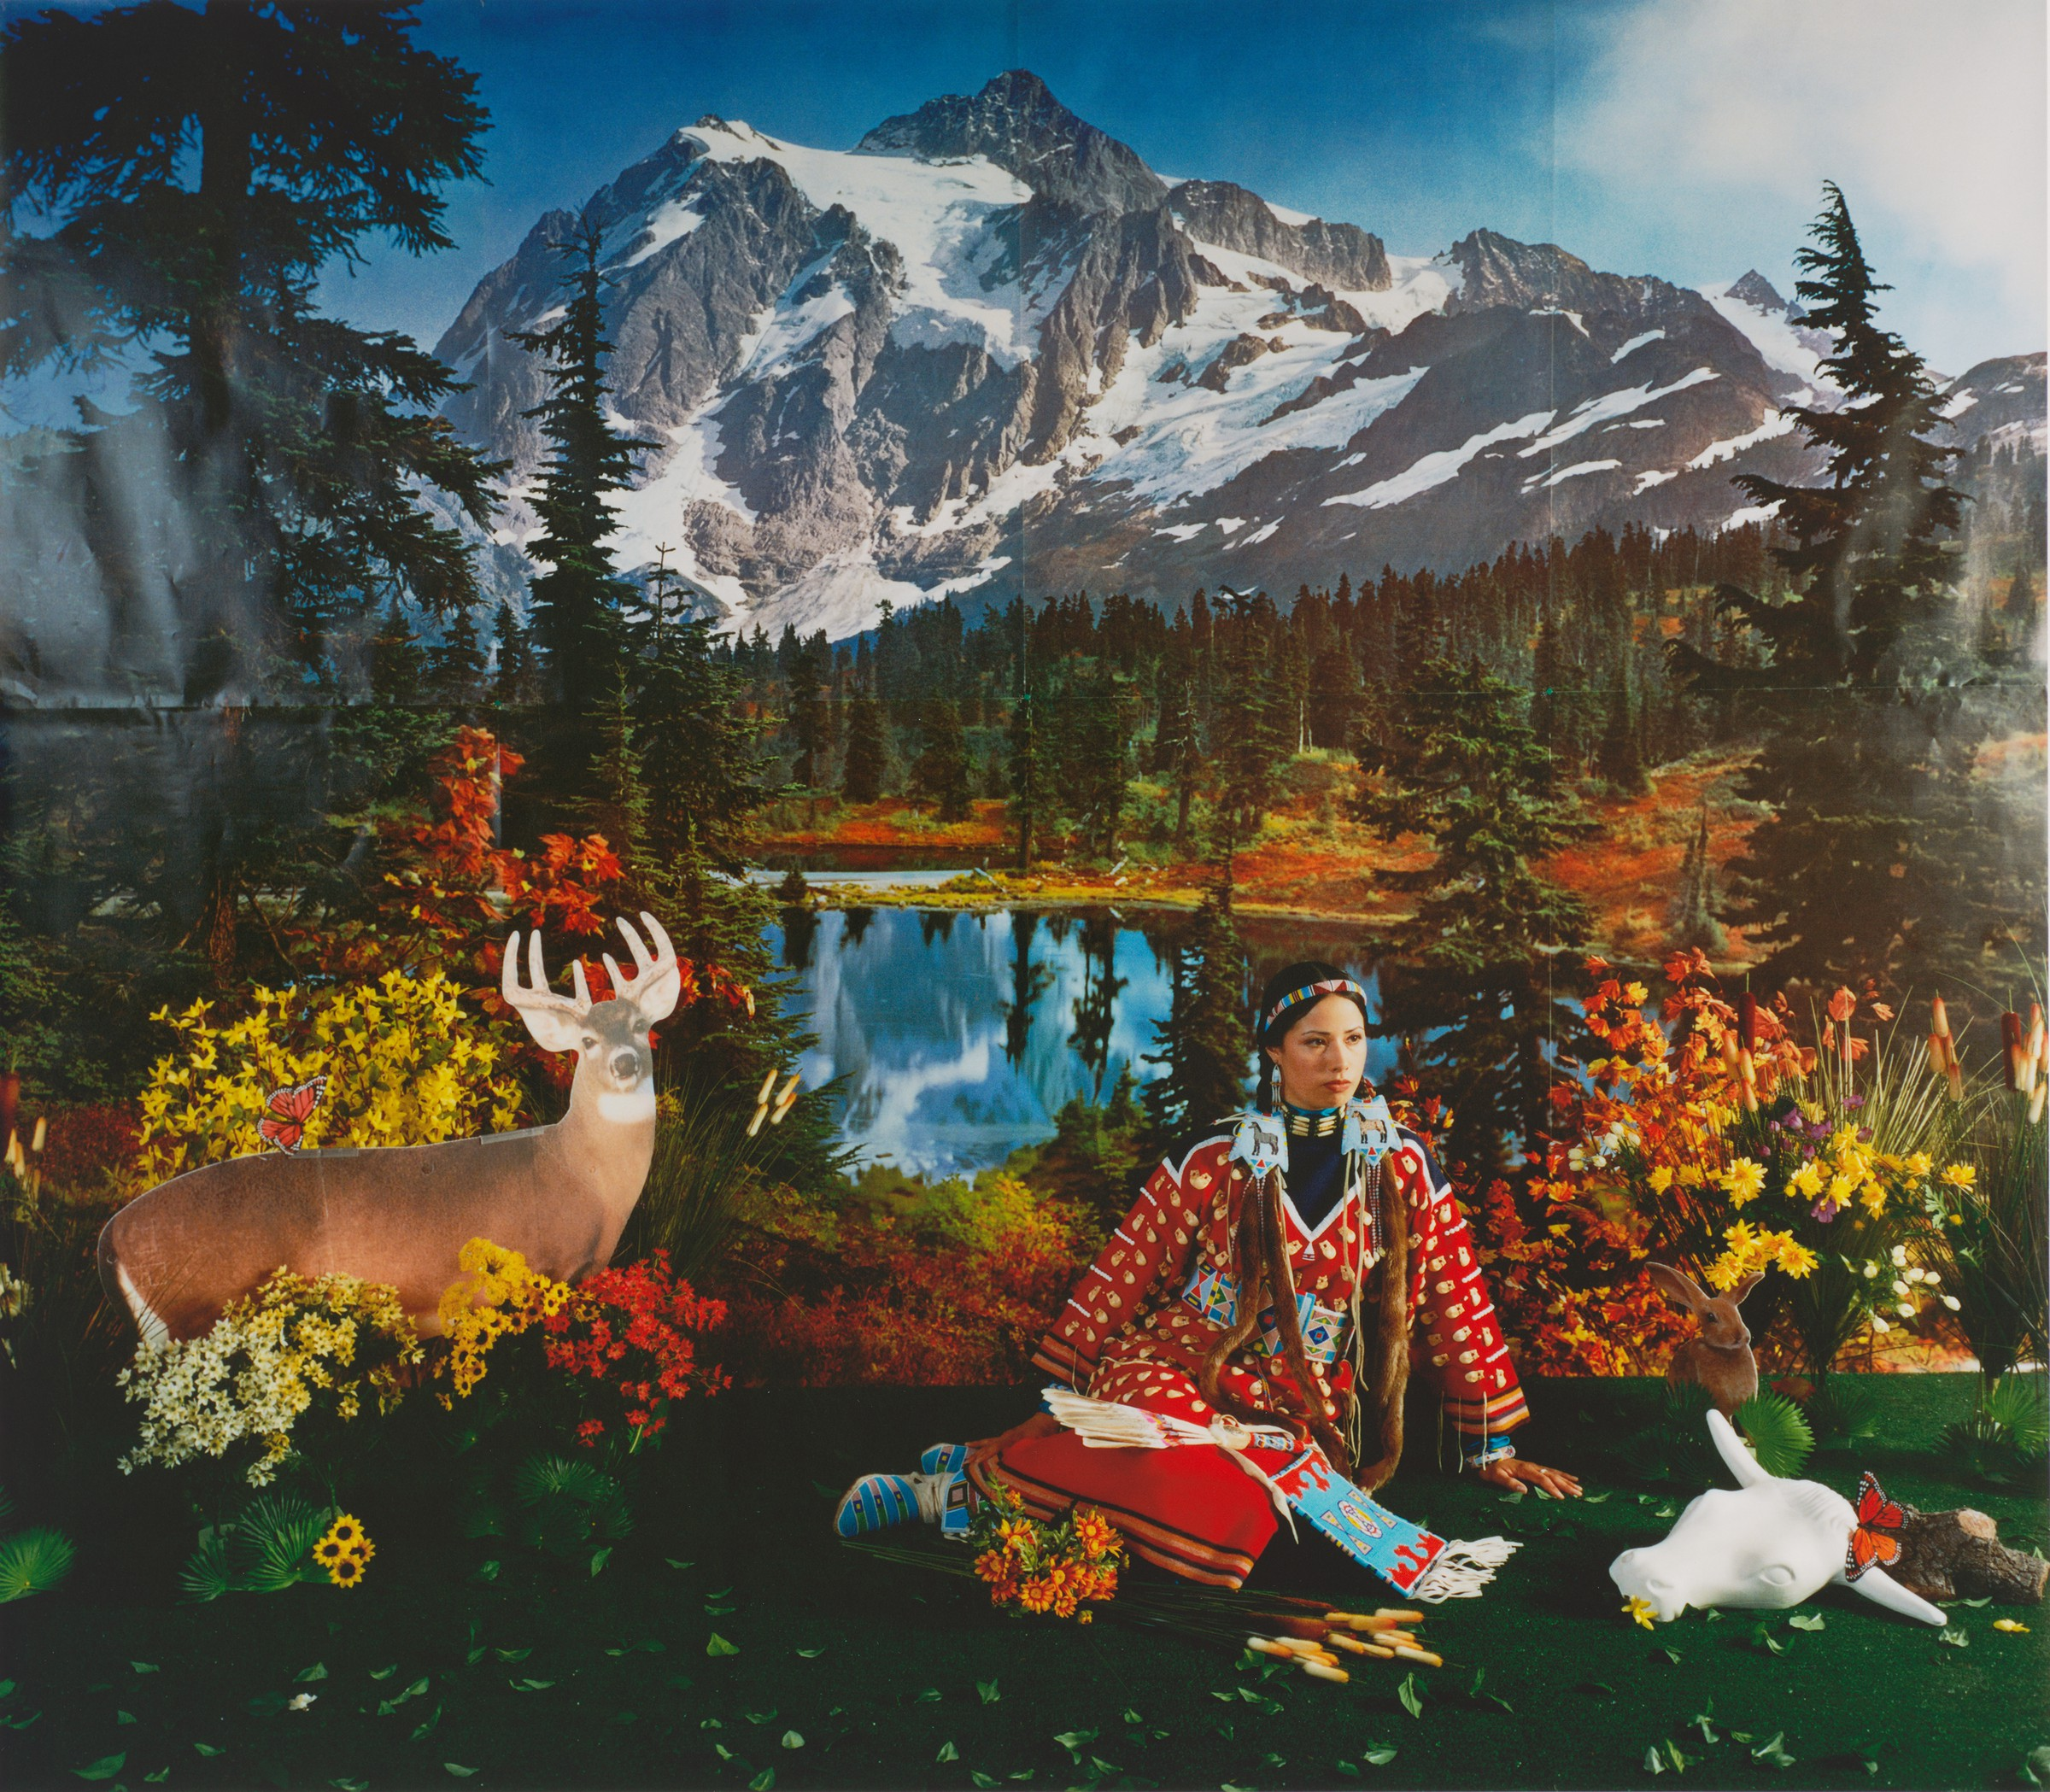 A color photograph of a landscape with snowcapped mountains, coniferous forests, and a lake. In the foreground, a Native American woman in traditional dress kneels on the ground surrounded by various artificial and real animals, shrubs, and flowers.